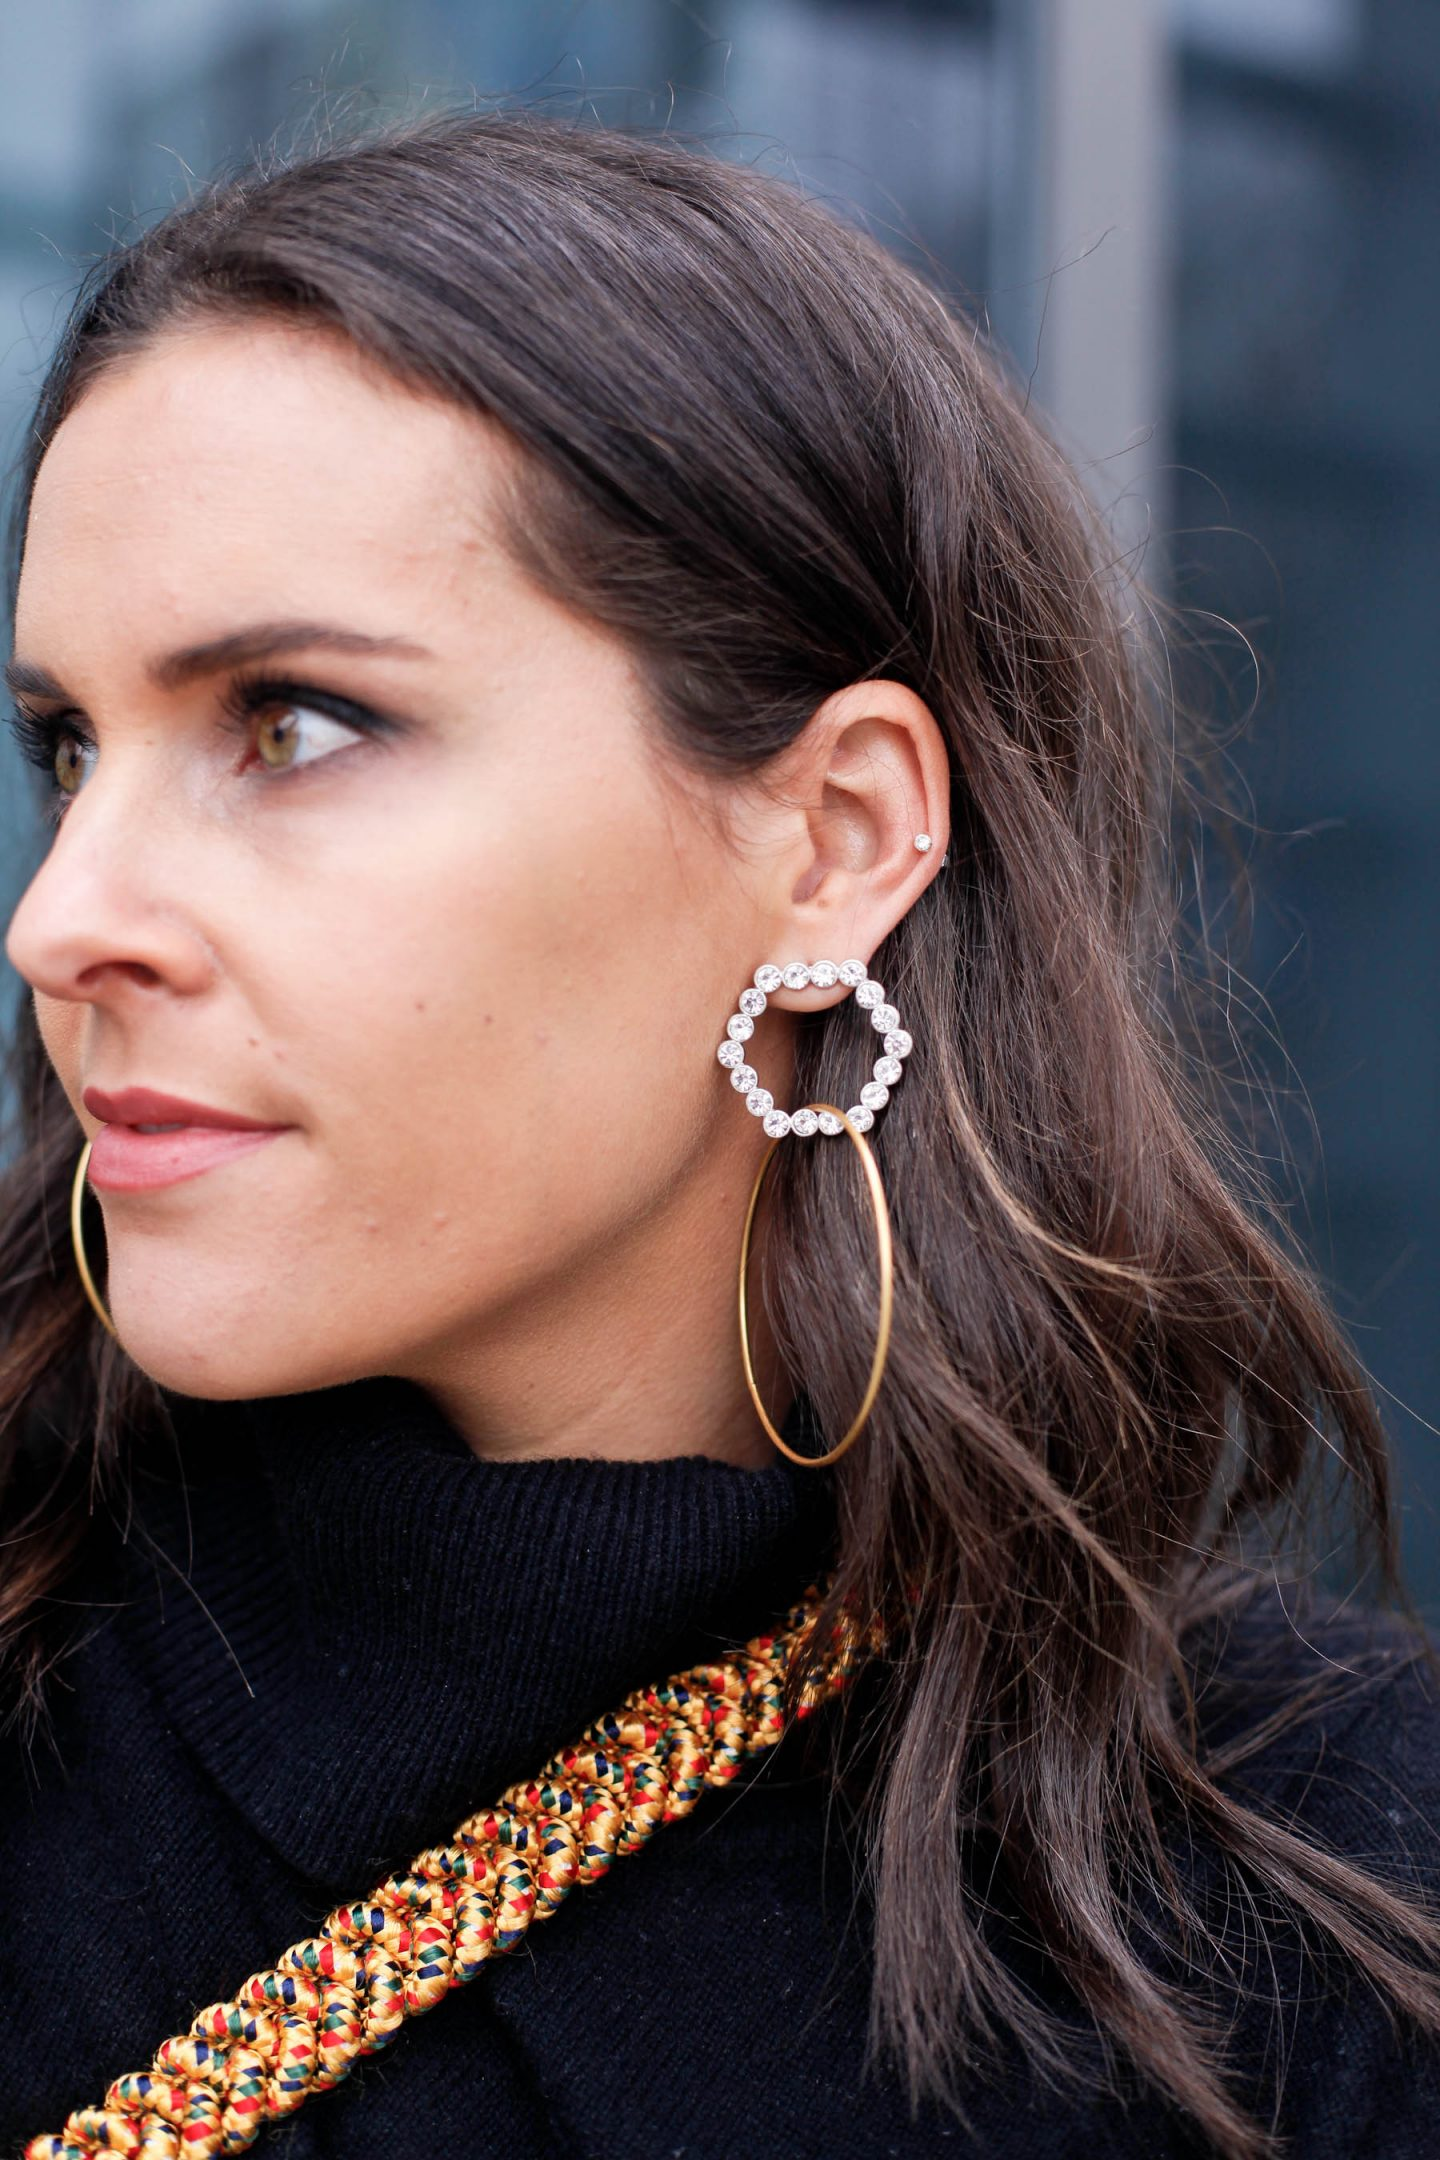 blogger statement earrings